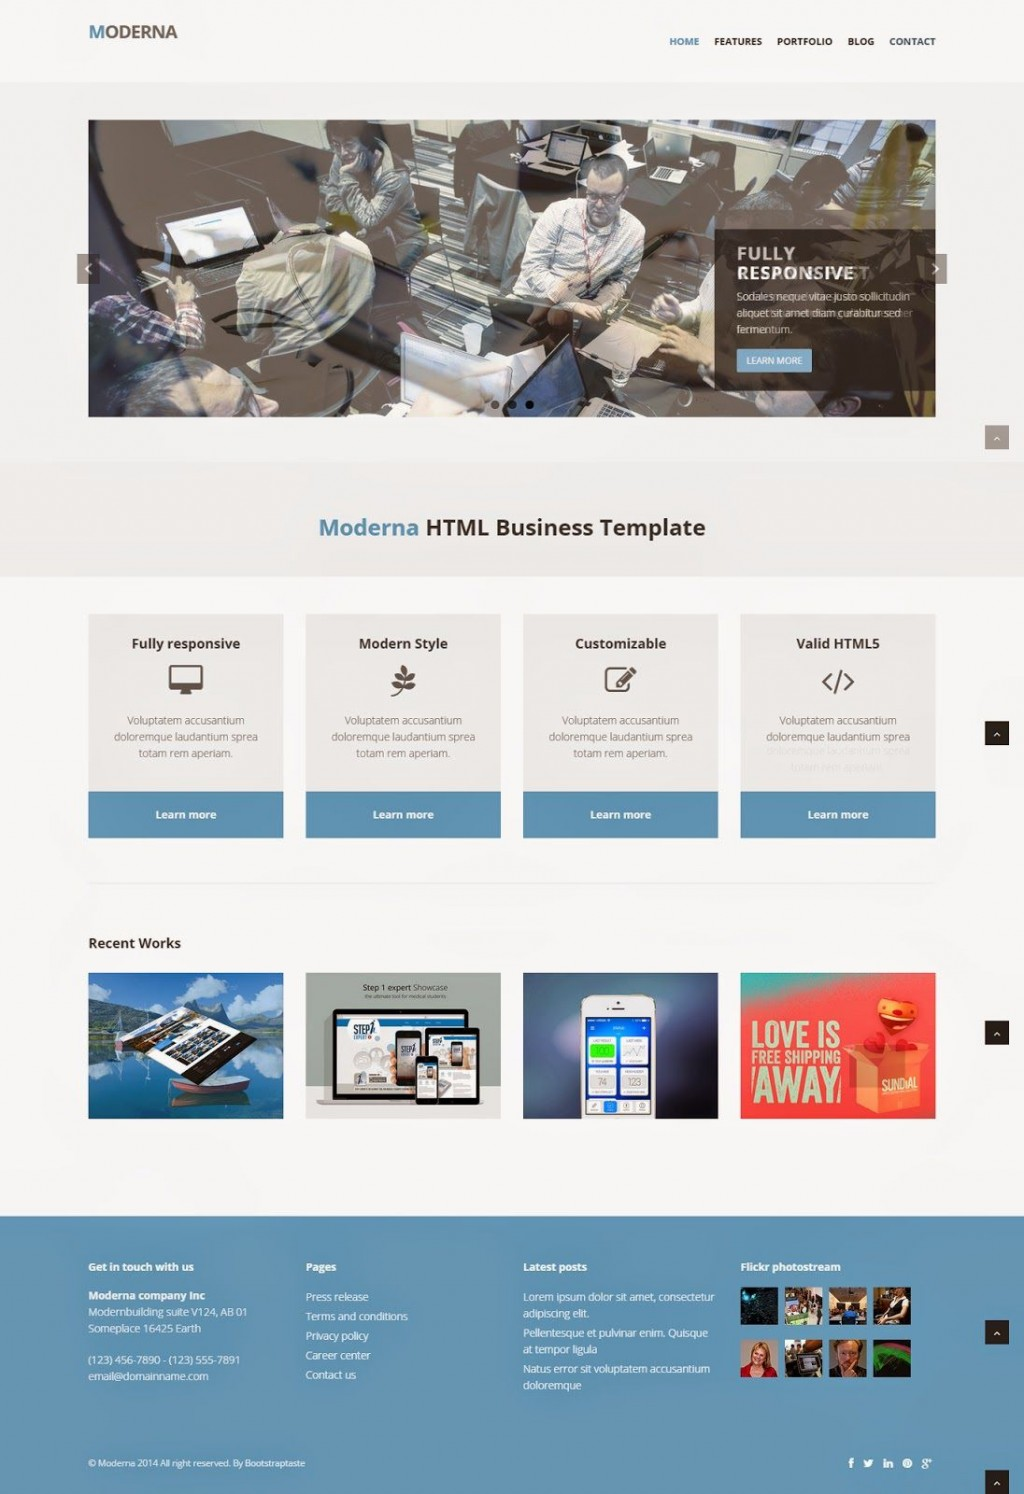 009 Wonderful Website Template Html Free Download Design  Indian School Software Company SpiceLarge